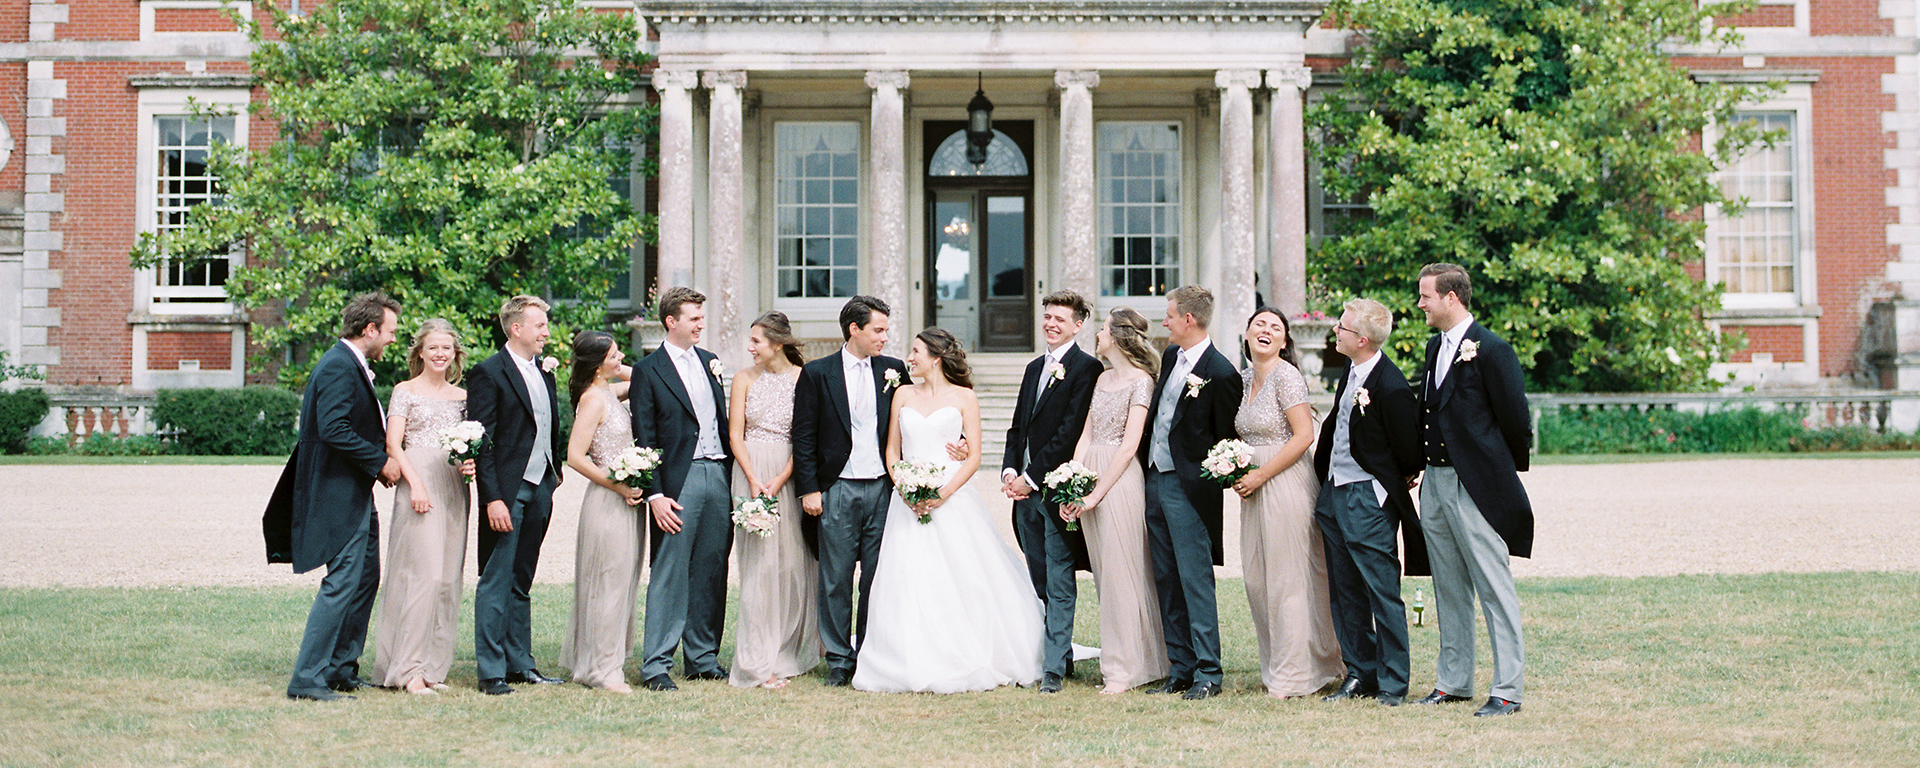 Our preferred supplier for all styles of marquee, Lewis Marquees offer a friendly and quality service for your special day.